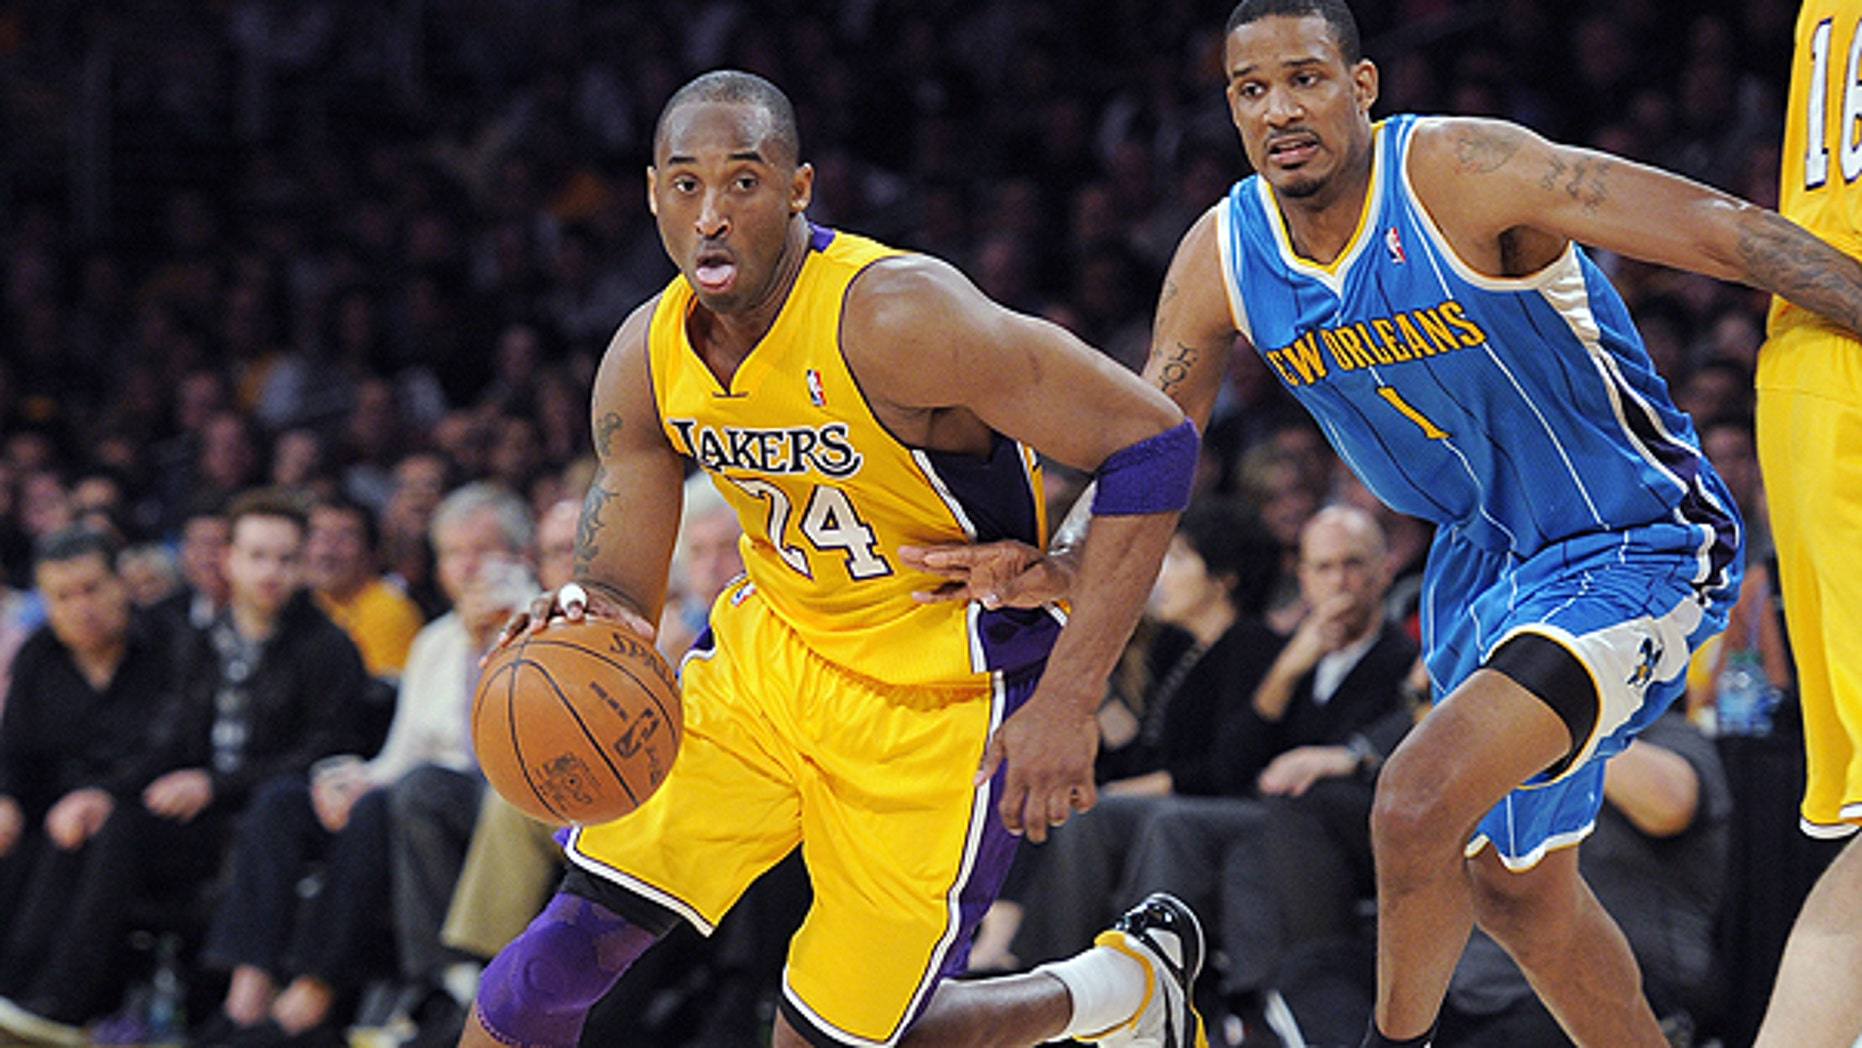 April 20: Los Angeles Lakers guard Kobe Bryant, left, drives toward the basket as New Orleans Hornets forward Trevor Ariza defends during the first half of Game 2 of a first-round NBA basketball playoff series in Los Angeles.